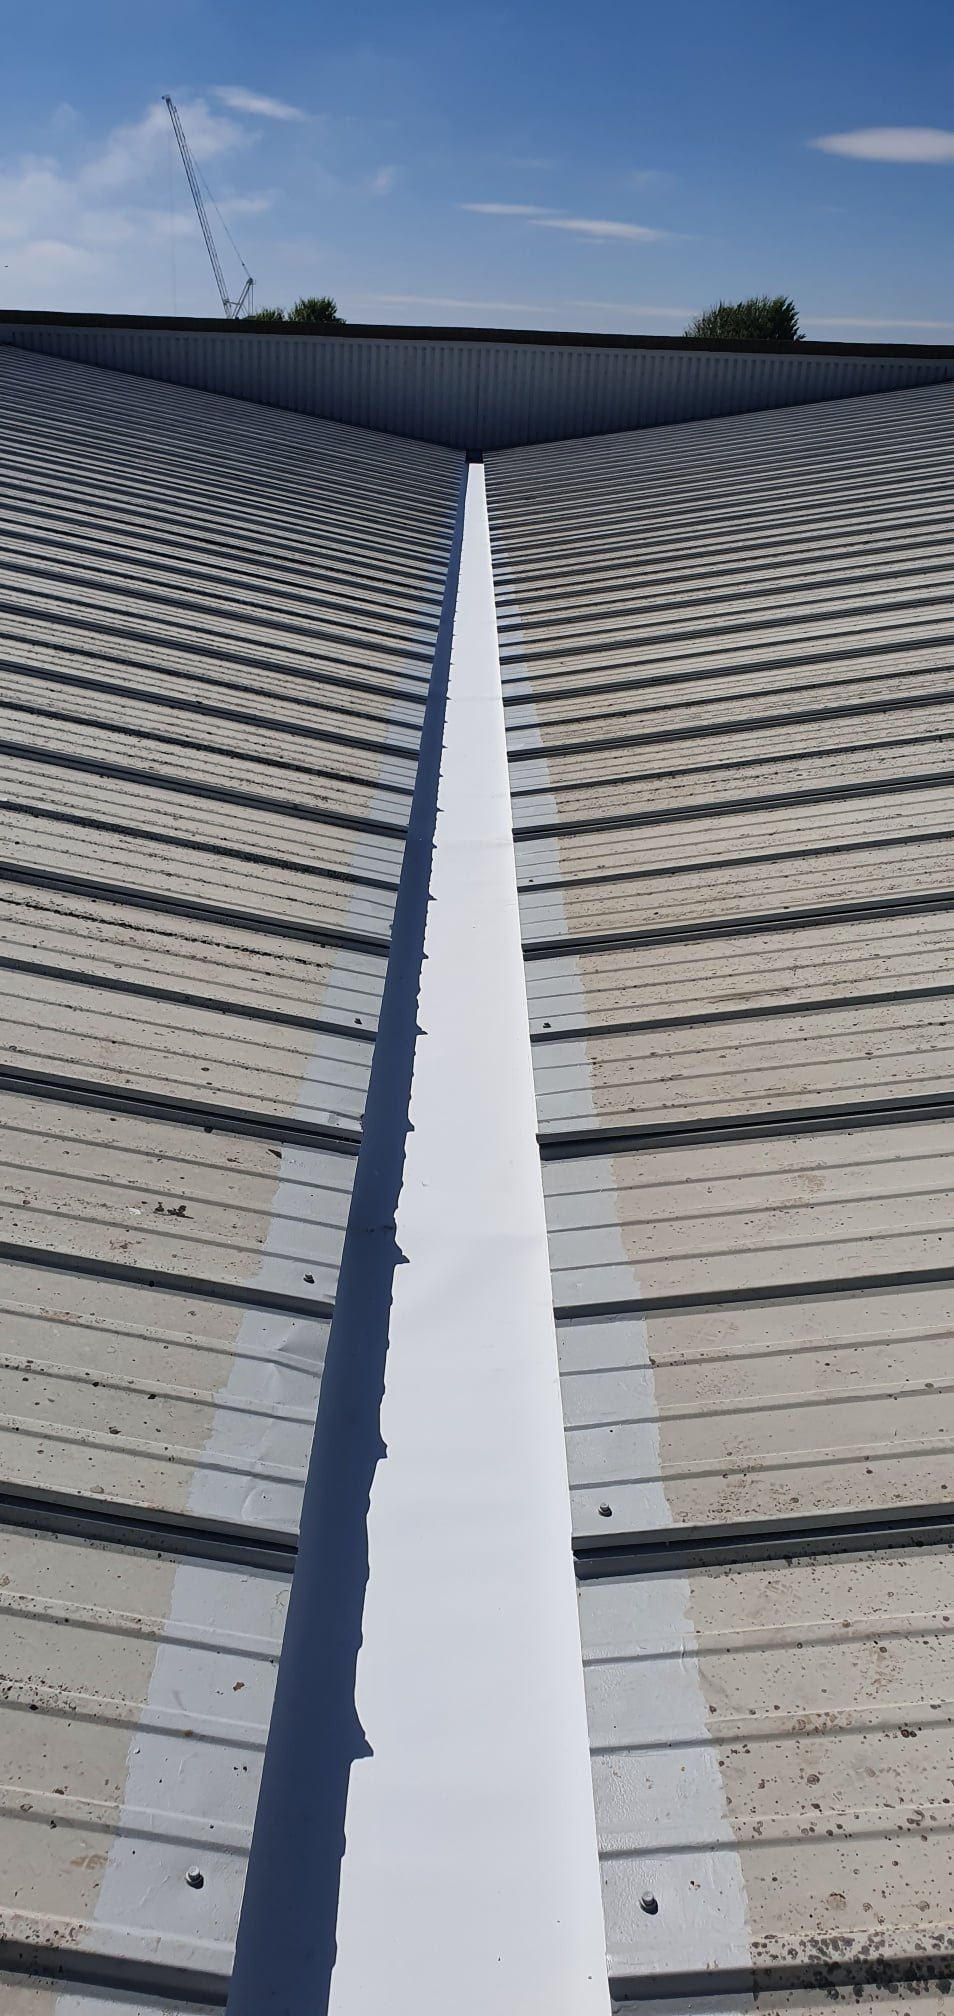 Gutter Lining Work to a Furniture Store Roof in Hove West Sussex